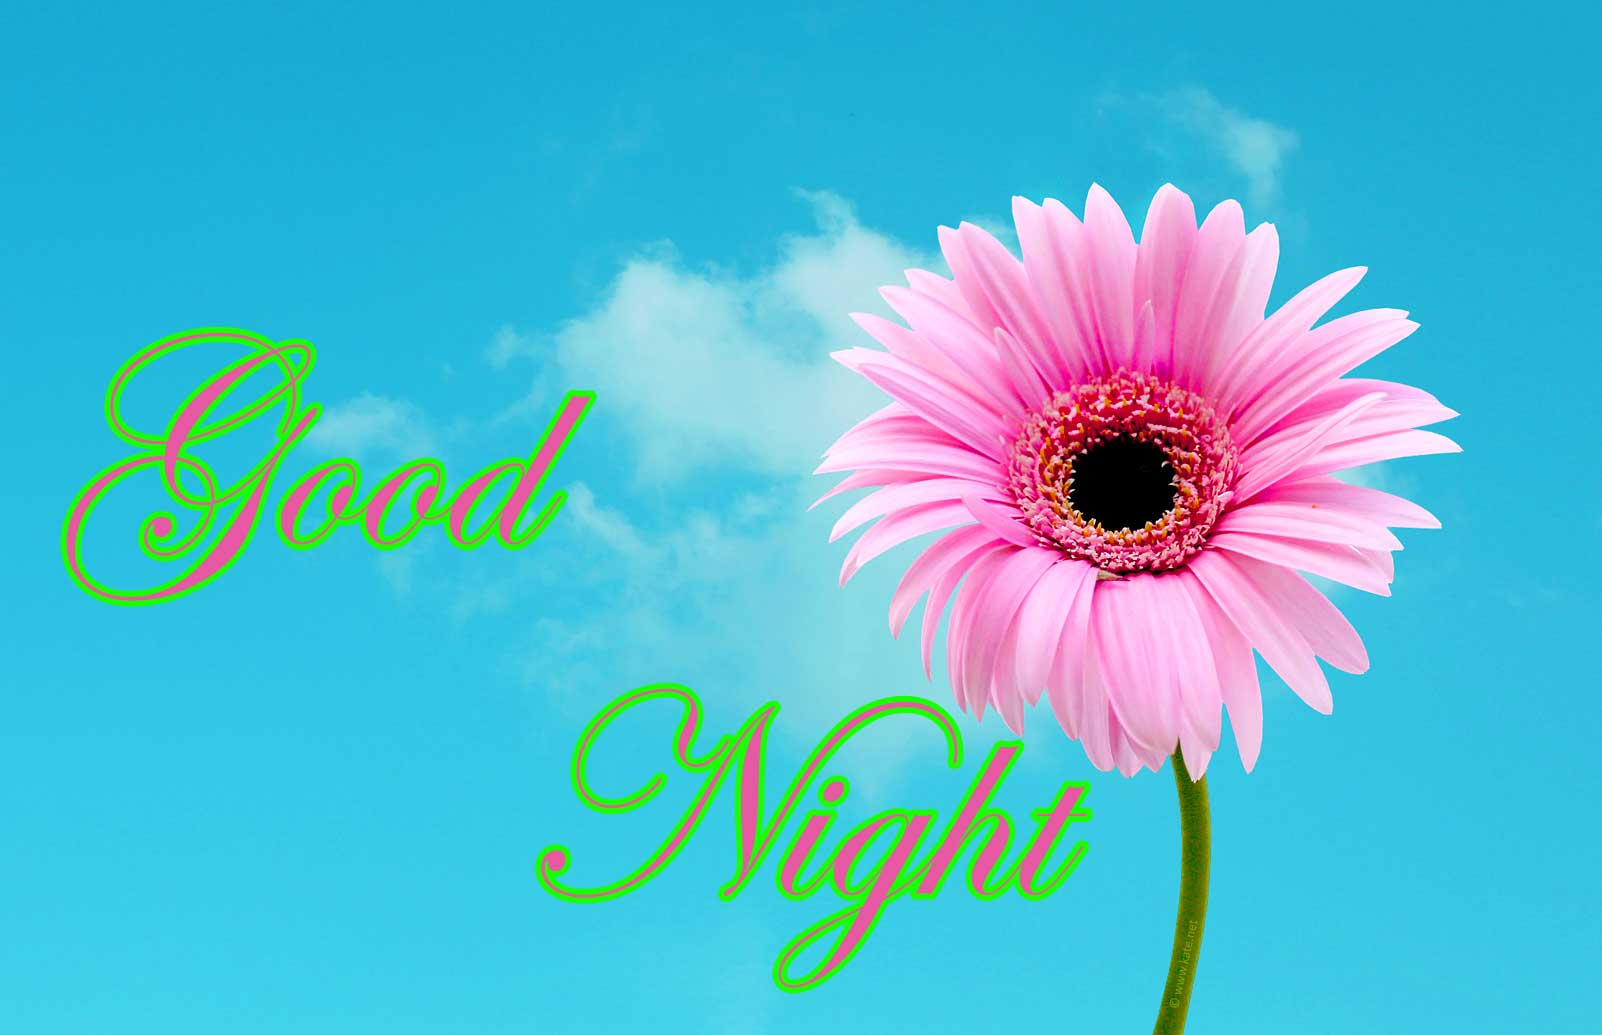 Free good night pics for Facebook